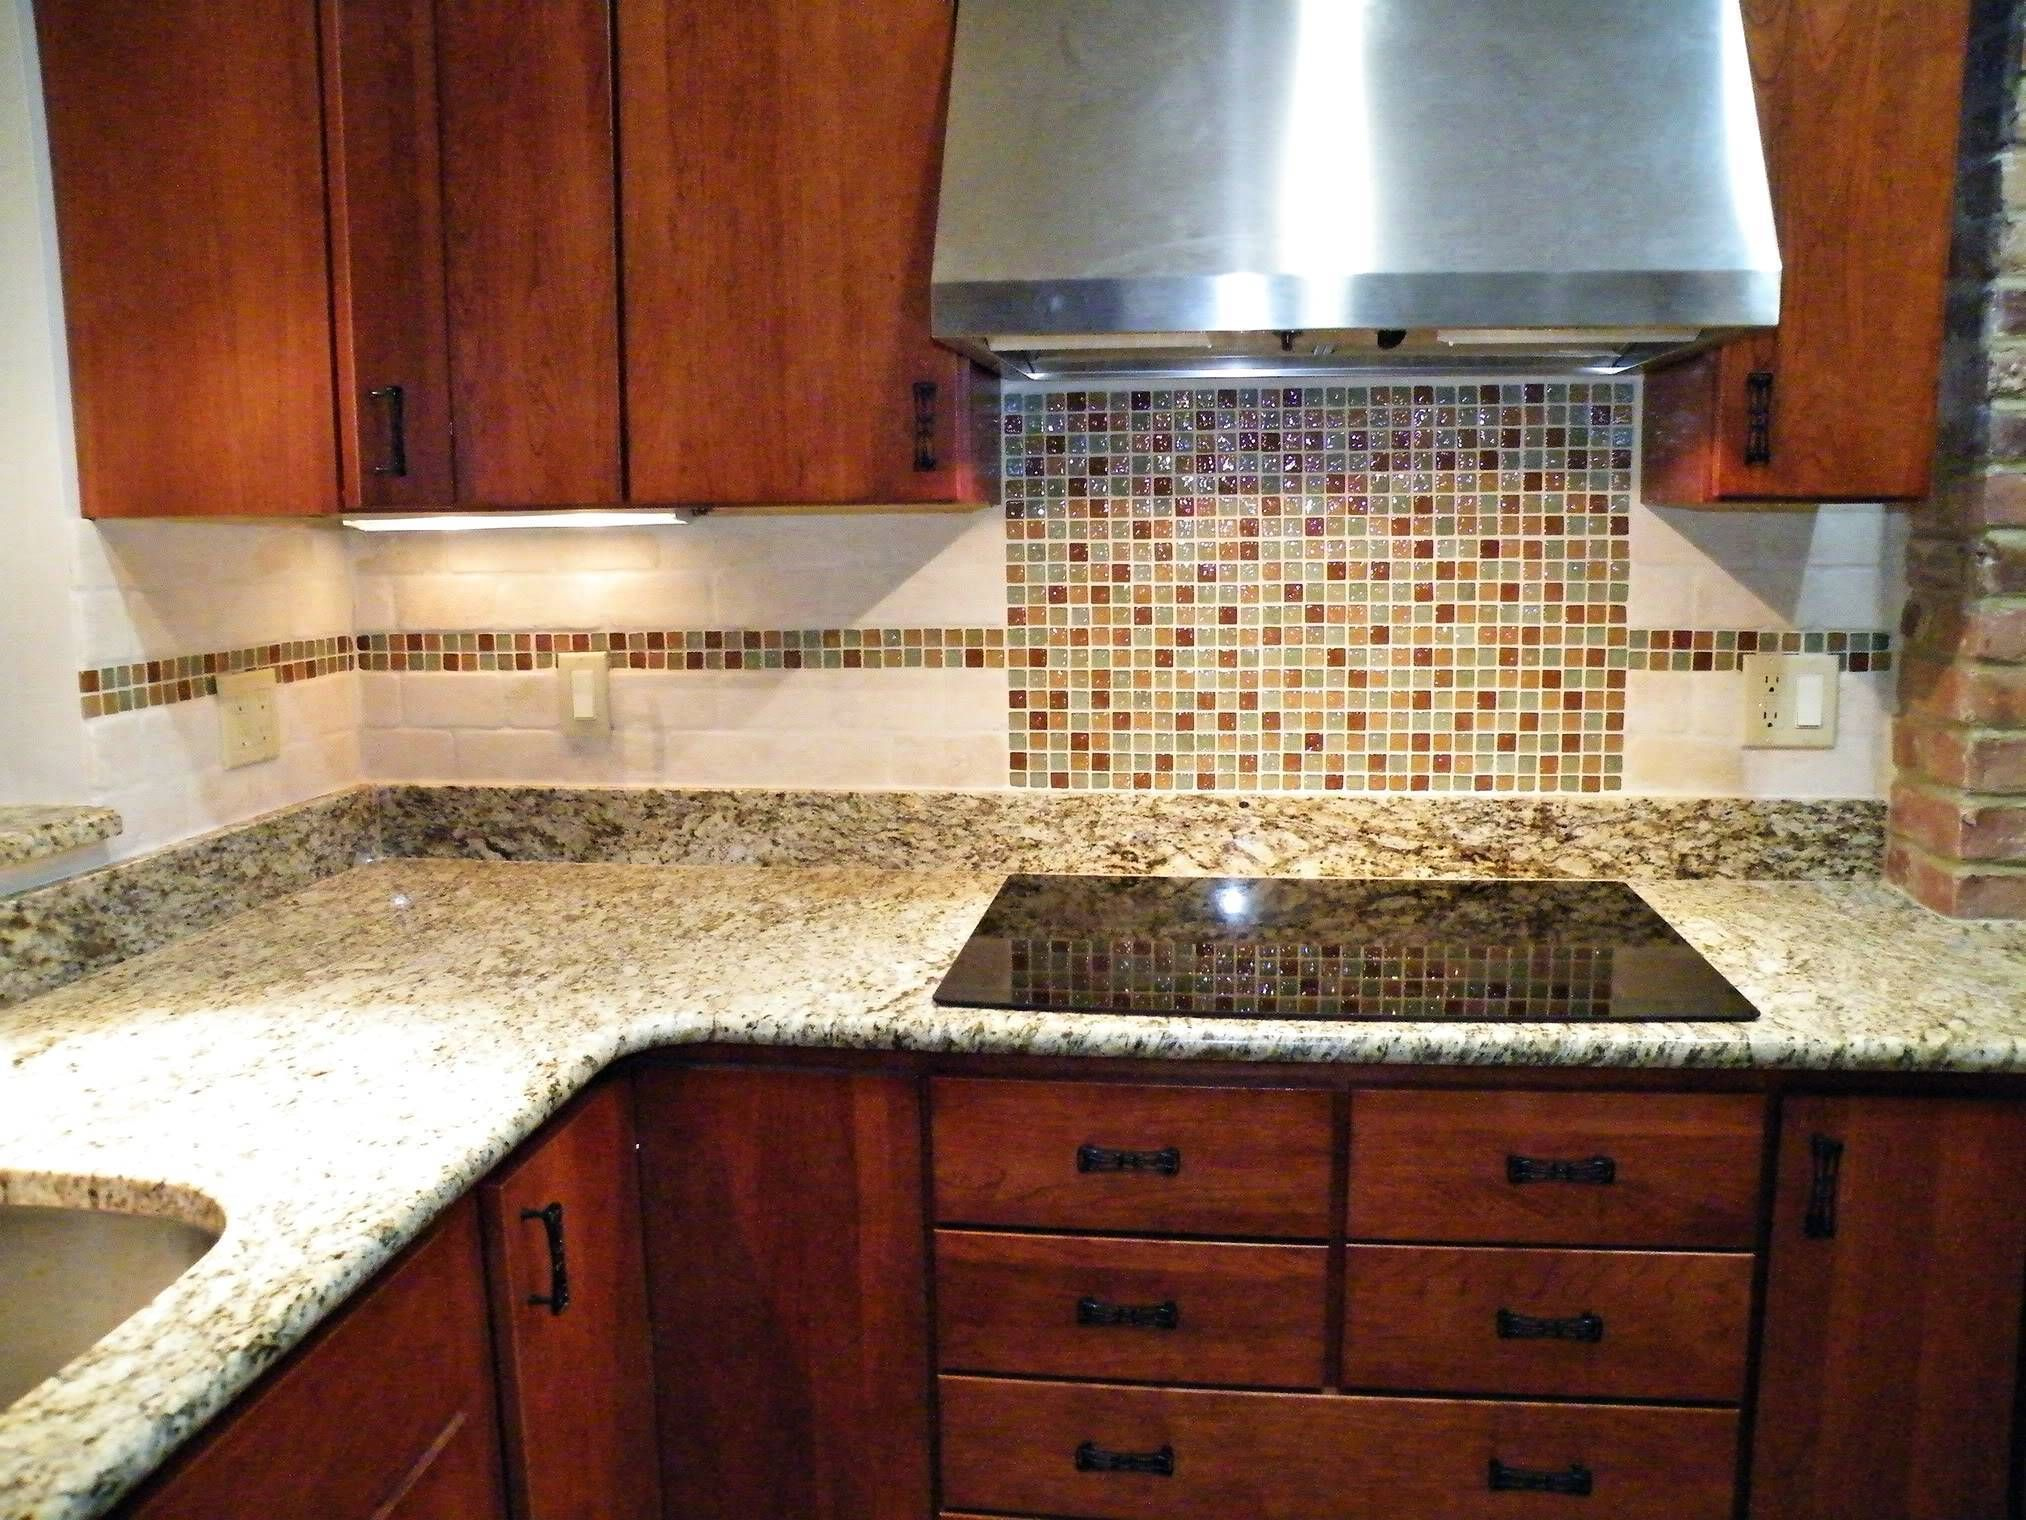 30 Awesome Backsplash Ideas For Small Kitches For You Glass